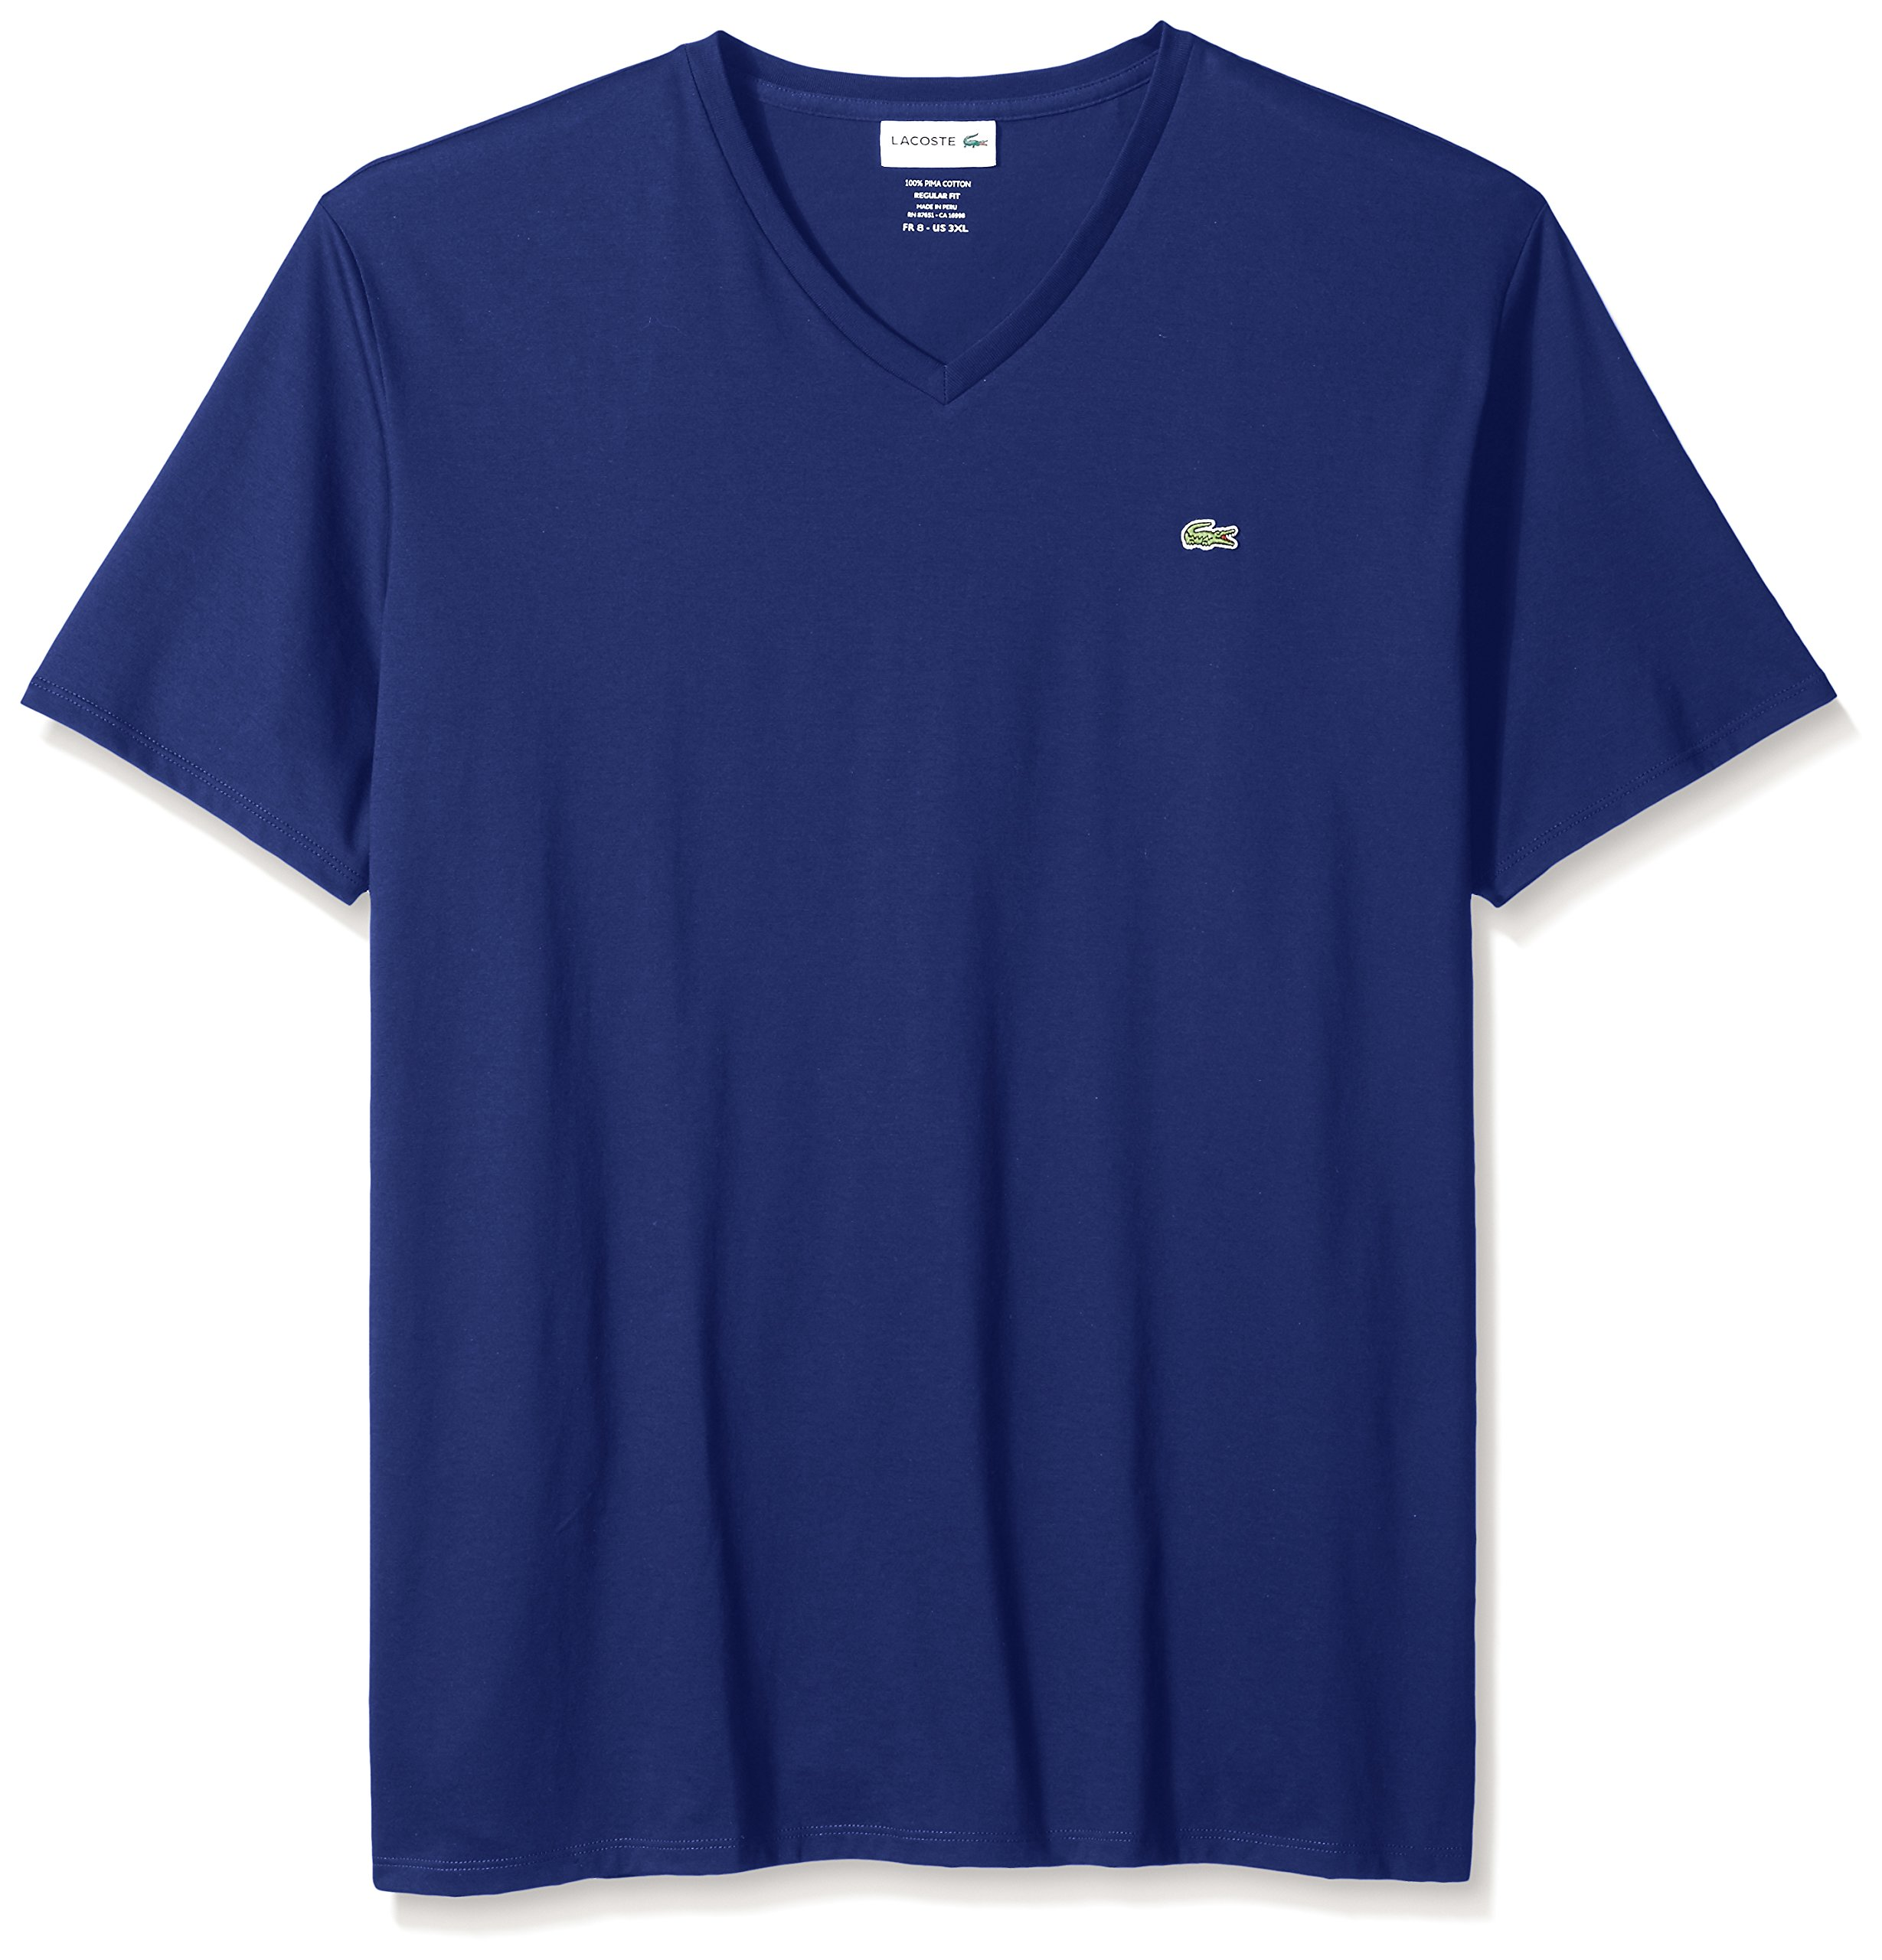 Lacoste Men's Short Sleeve V Neck Pima Jersey T-Shirt, Ocean, XX-Large